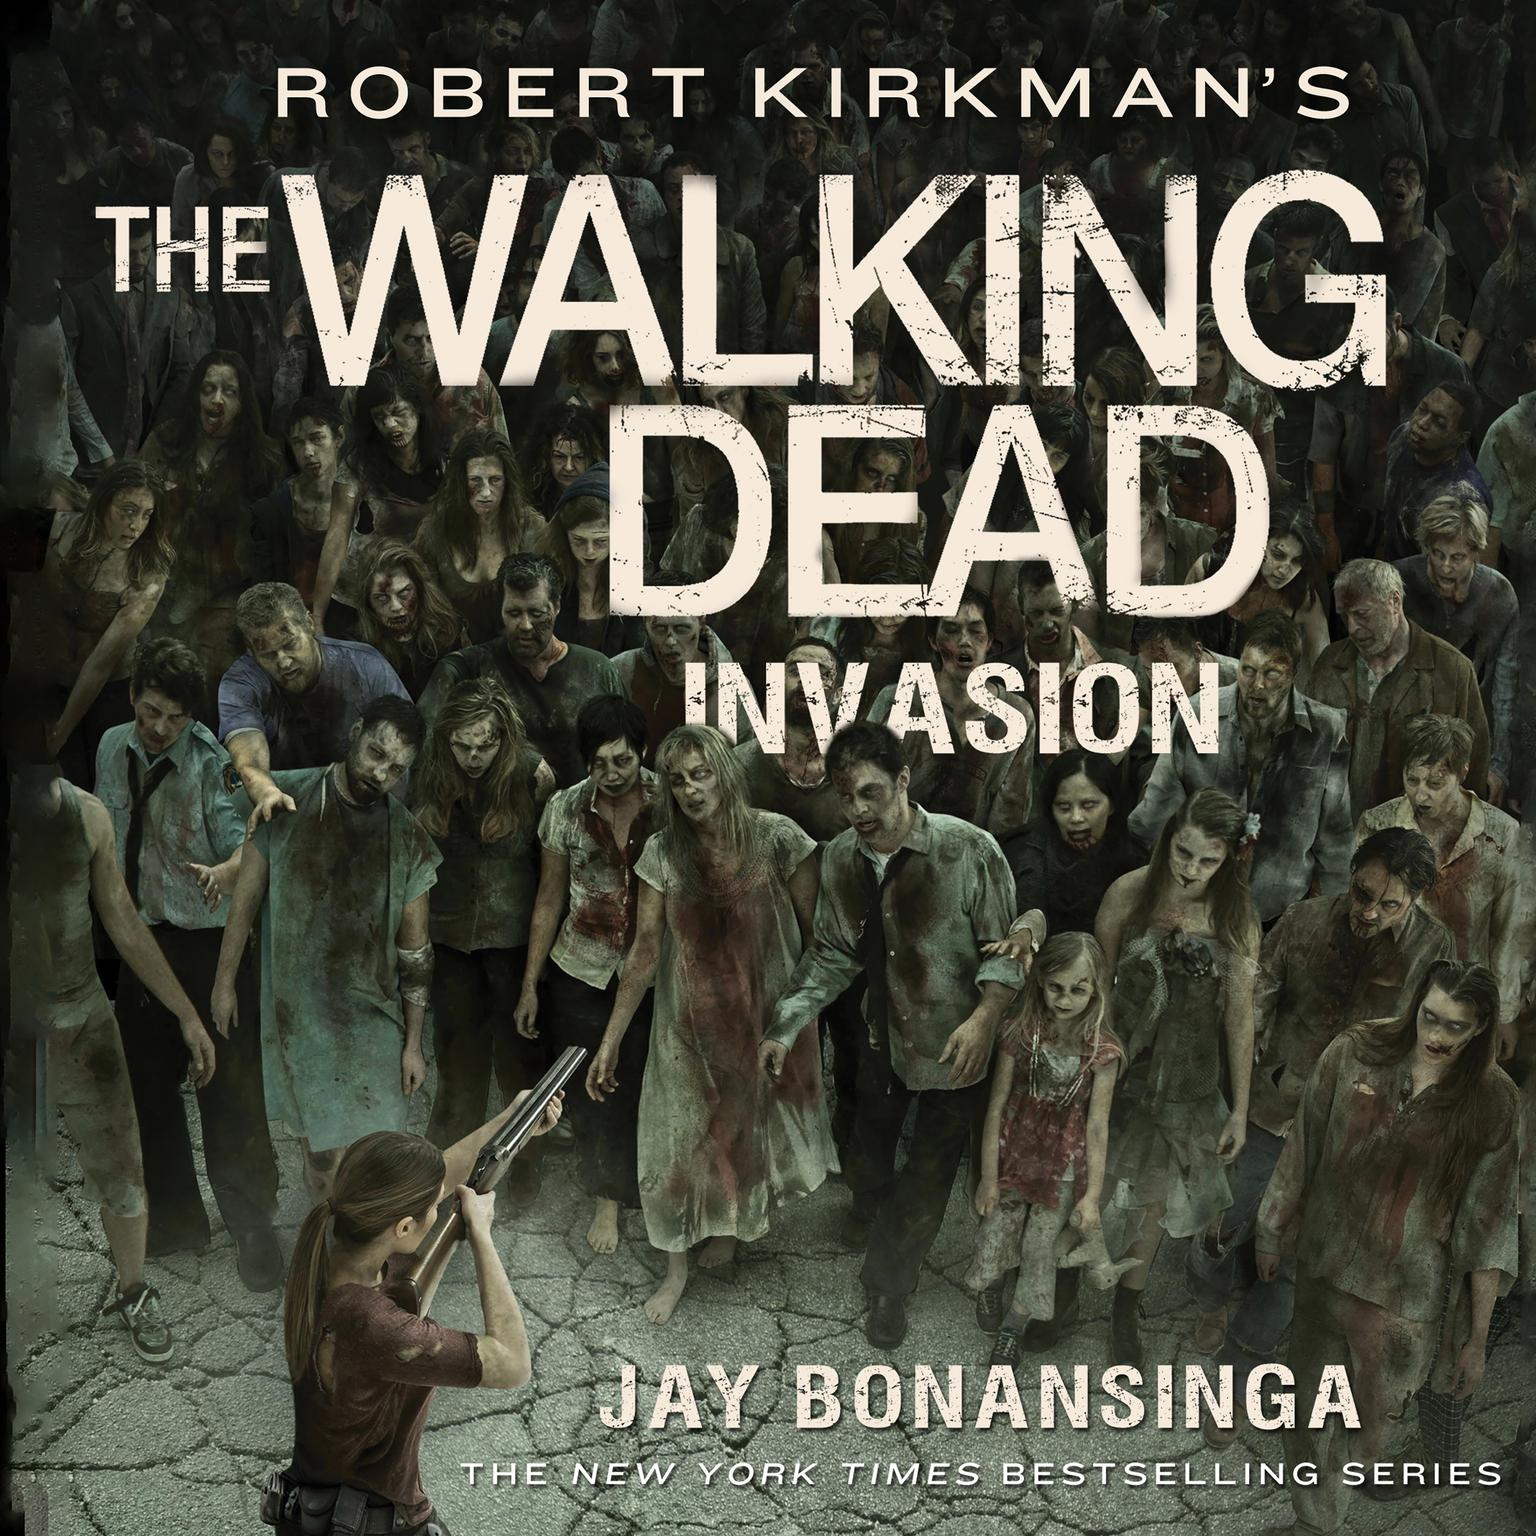 Printable Robert Kirkman's The Walking Dead: Invasion Audiobook Cover Art